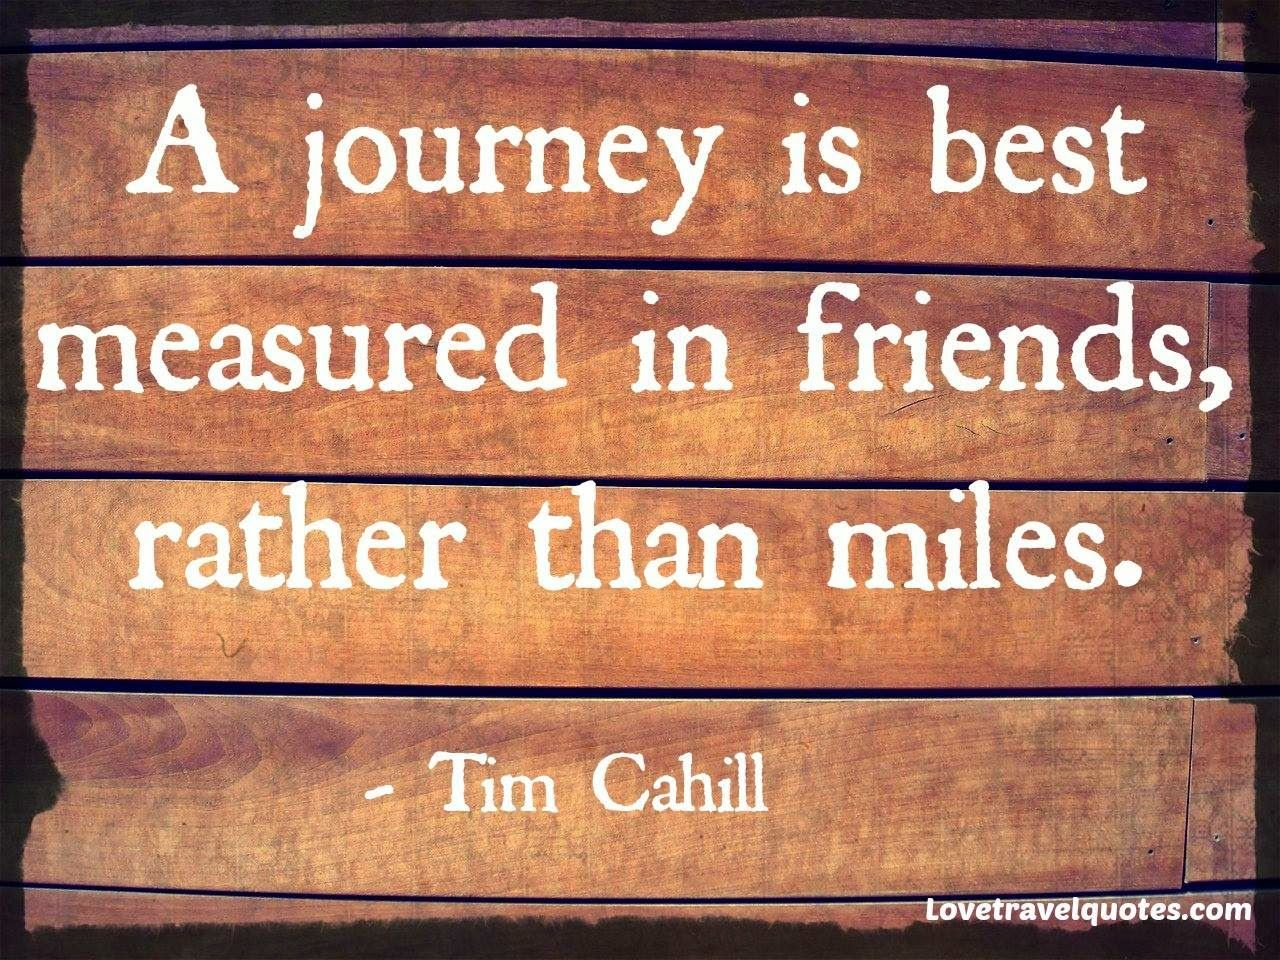 """Quotes About Journey Of Friendship A Journey Is Best Measured In Friends Rather Than Miles.""""  Tim"""